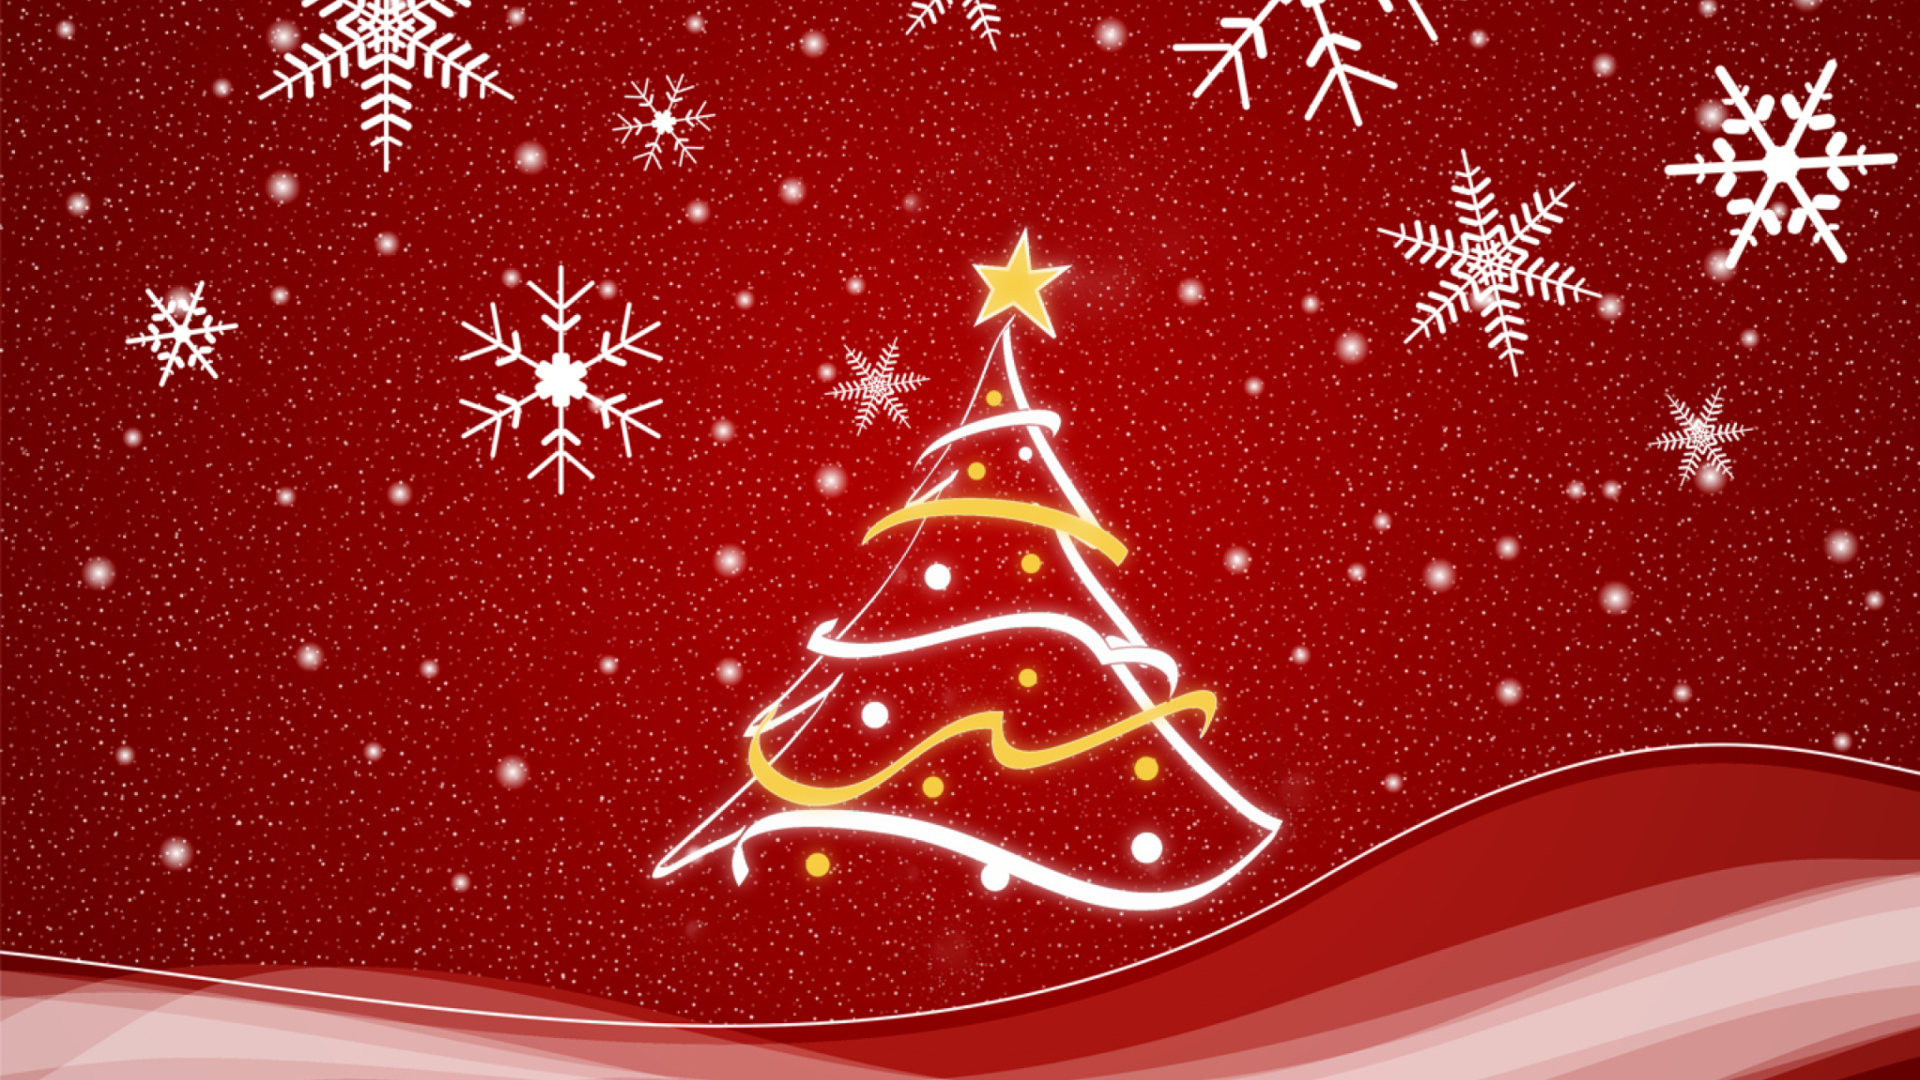 Christmas Tree wallpaper 1920x1080